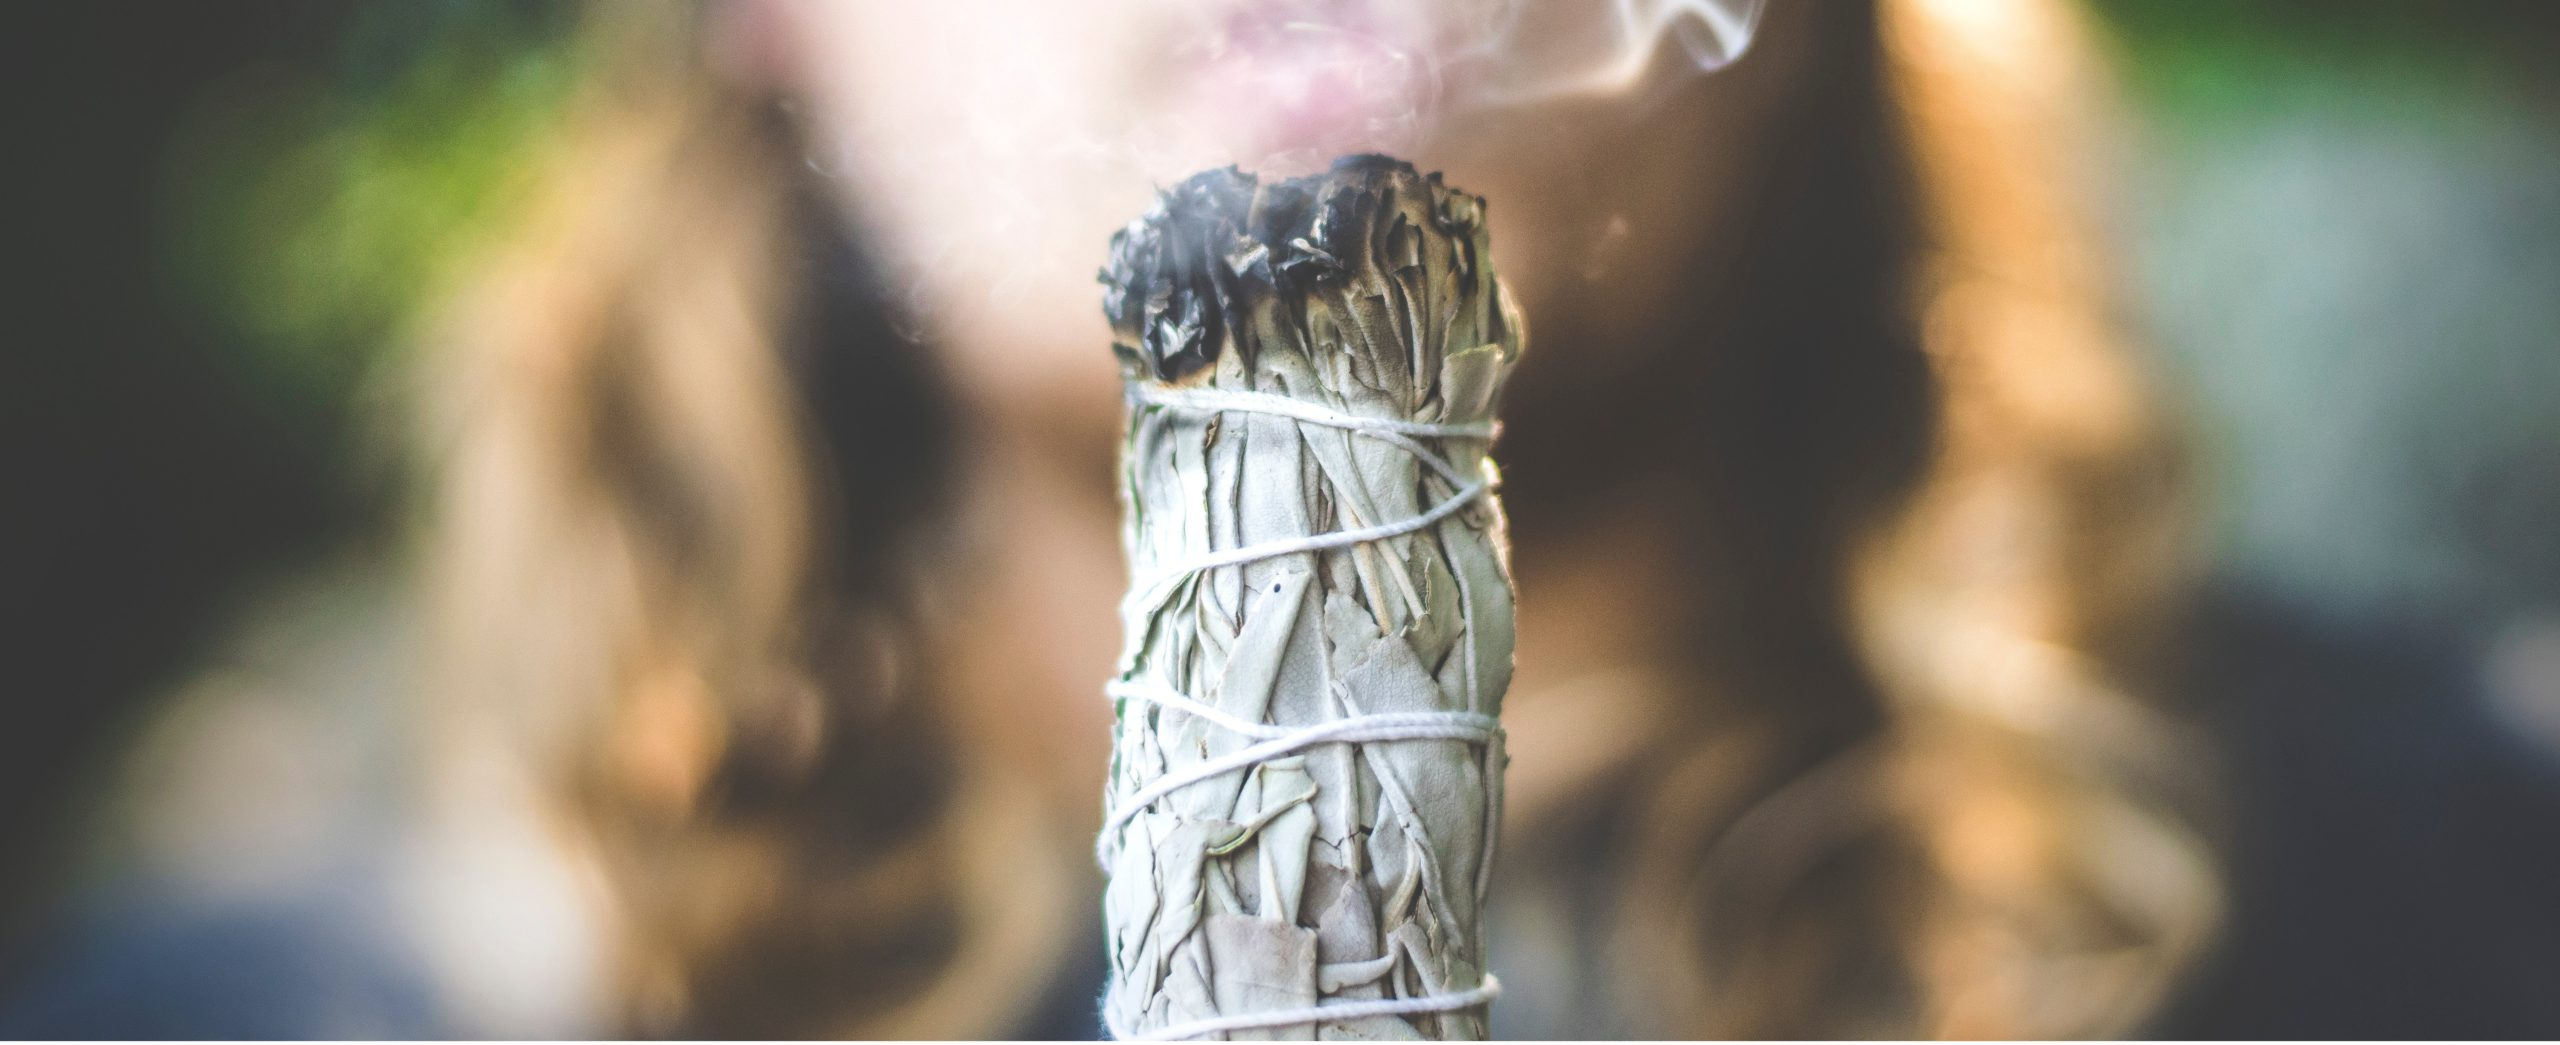 White Sage Smudge Sticks - header 1